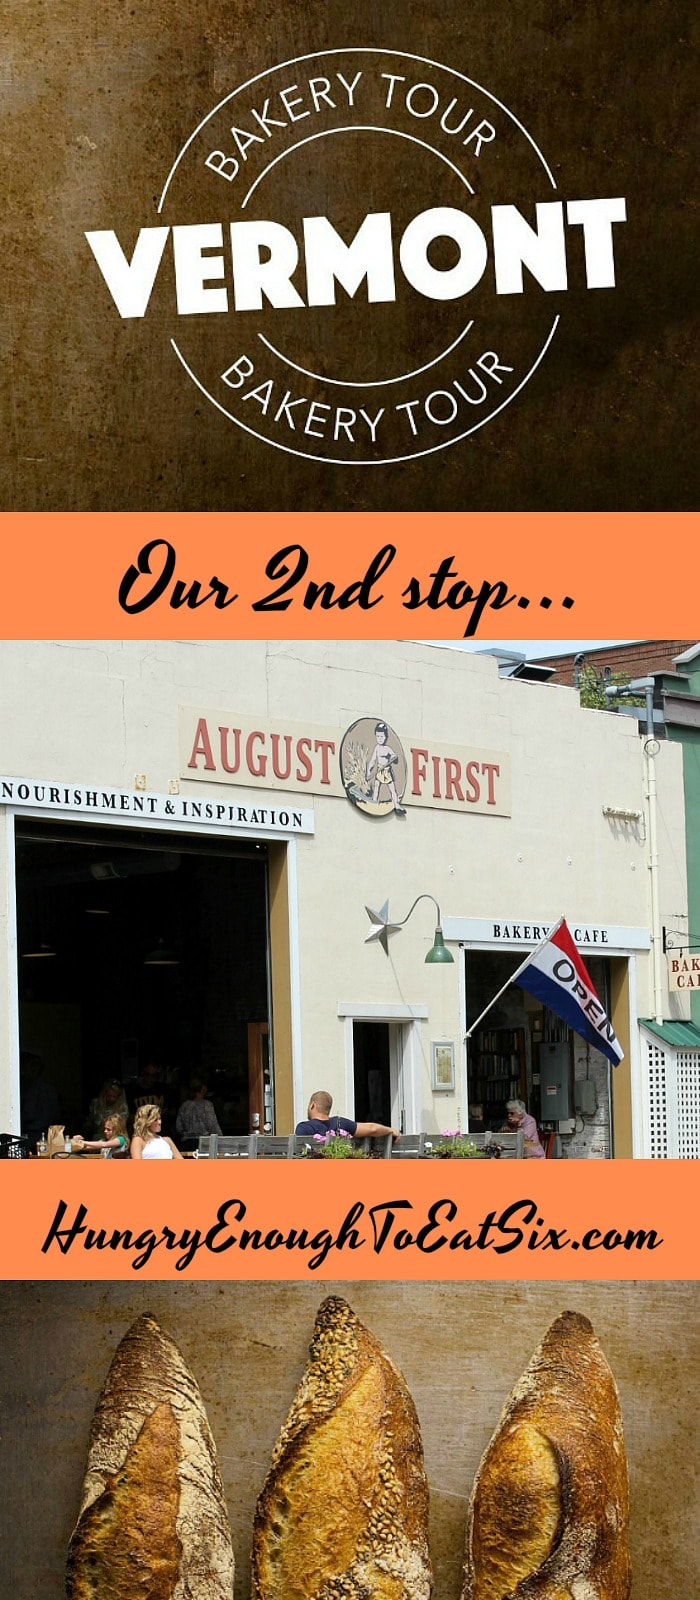 Delectable Destinations: August First Bakery: Our 2nd Stop ...